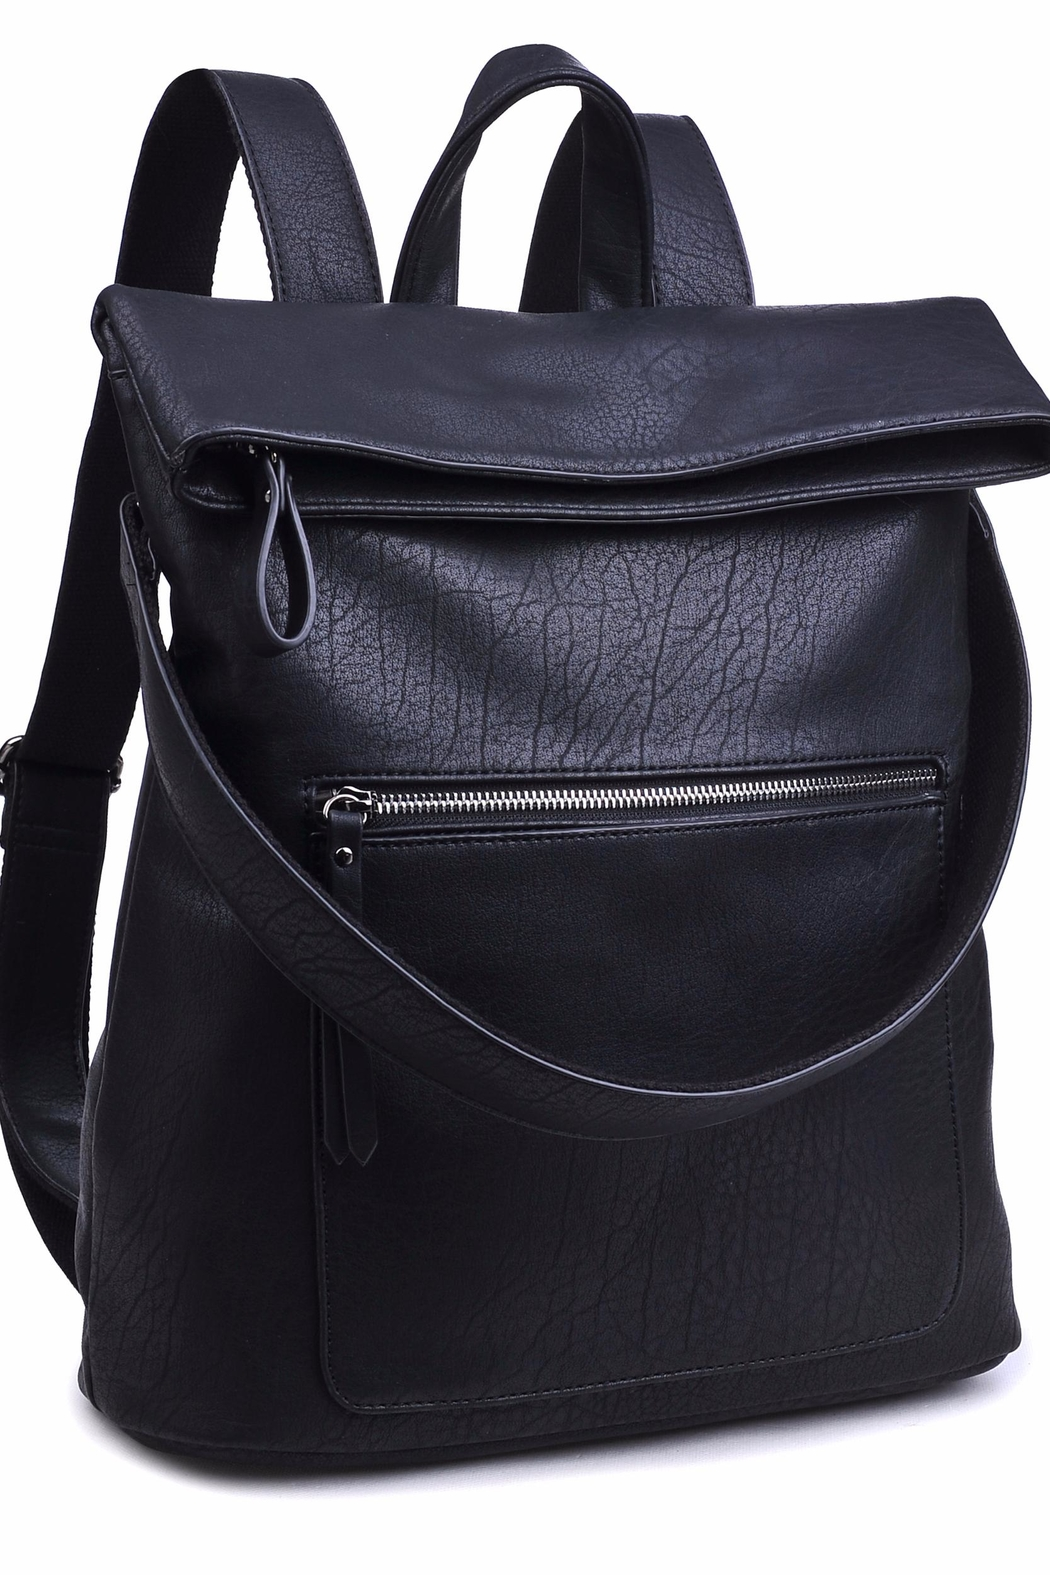 Urban Expressions Lennon Foldover Backpack - Side Cropped Image